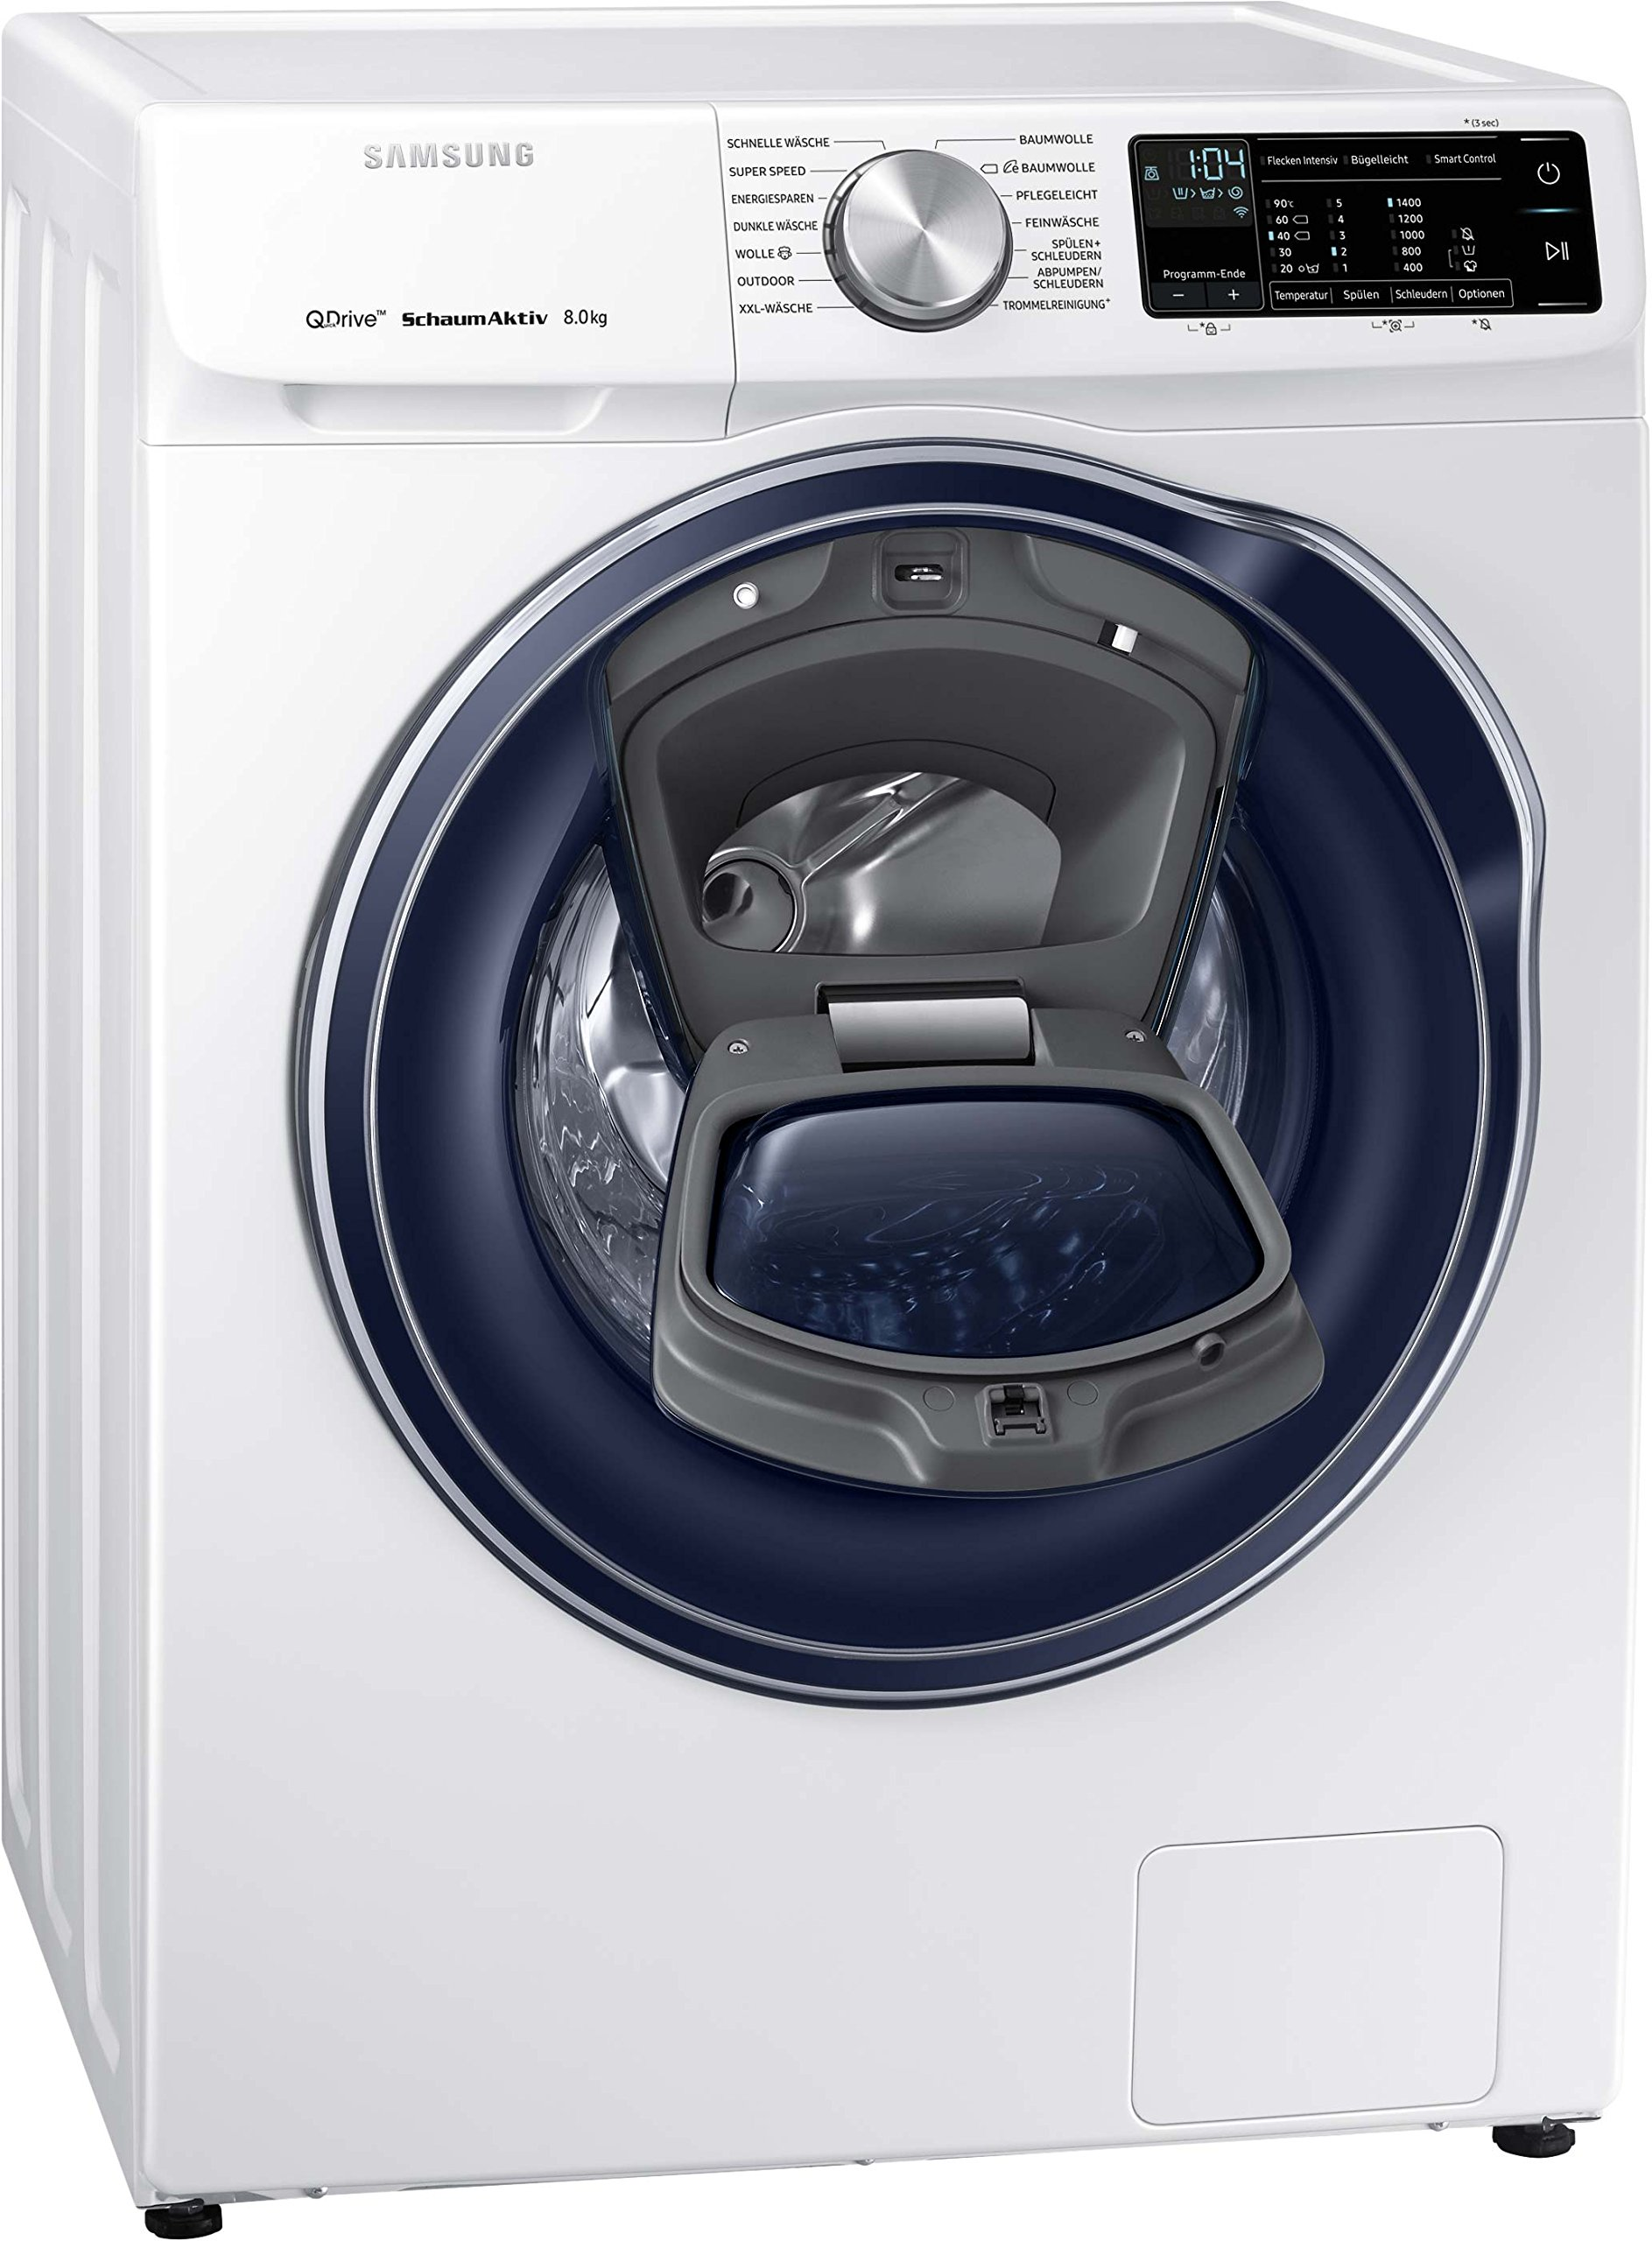 Samsung-WW6800-QuickDrive-WW81M642OPWEG-Waschmaschine-Frontlader-A-1400UpM-8kg-AddWash-SchaumAktiv-Technologie-FleckenIntensiv-Option-SmartControl-20Amazon-Dash-Replenishment-fhig